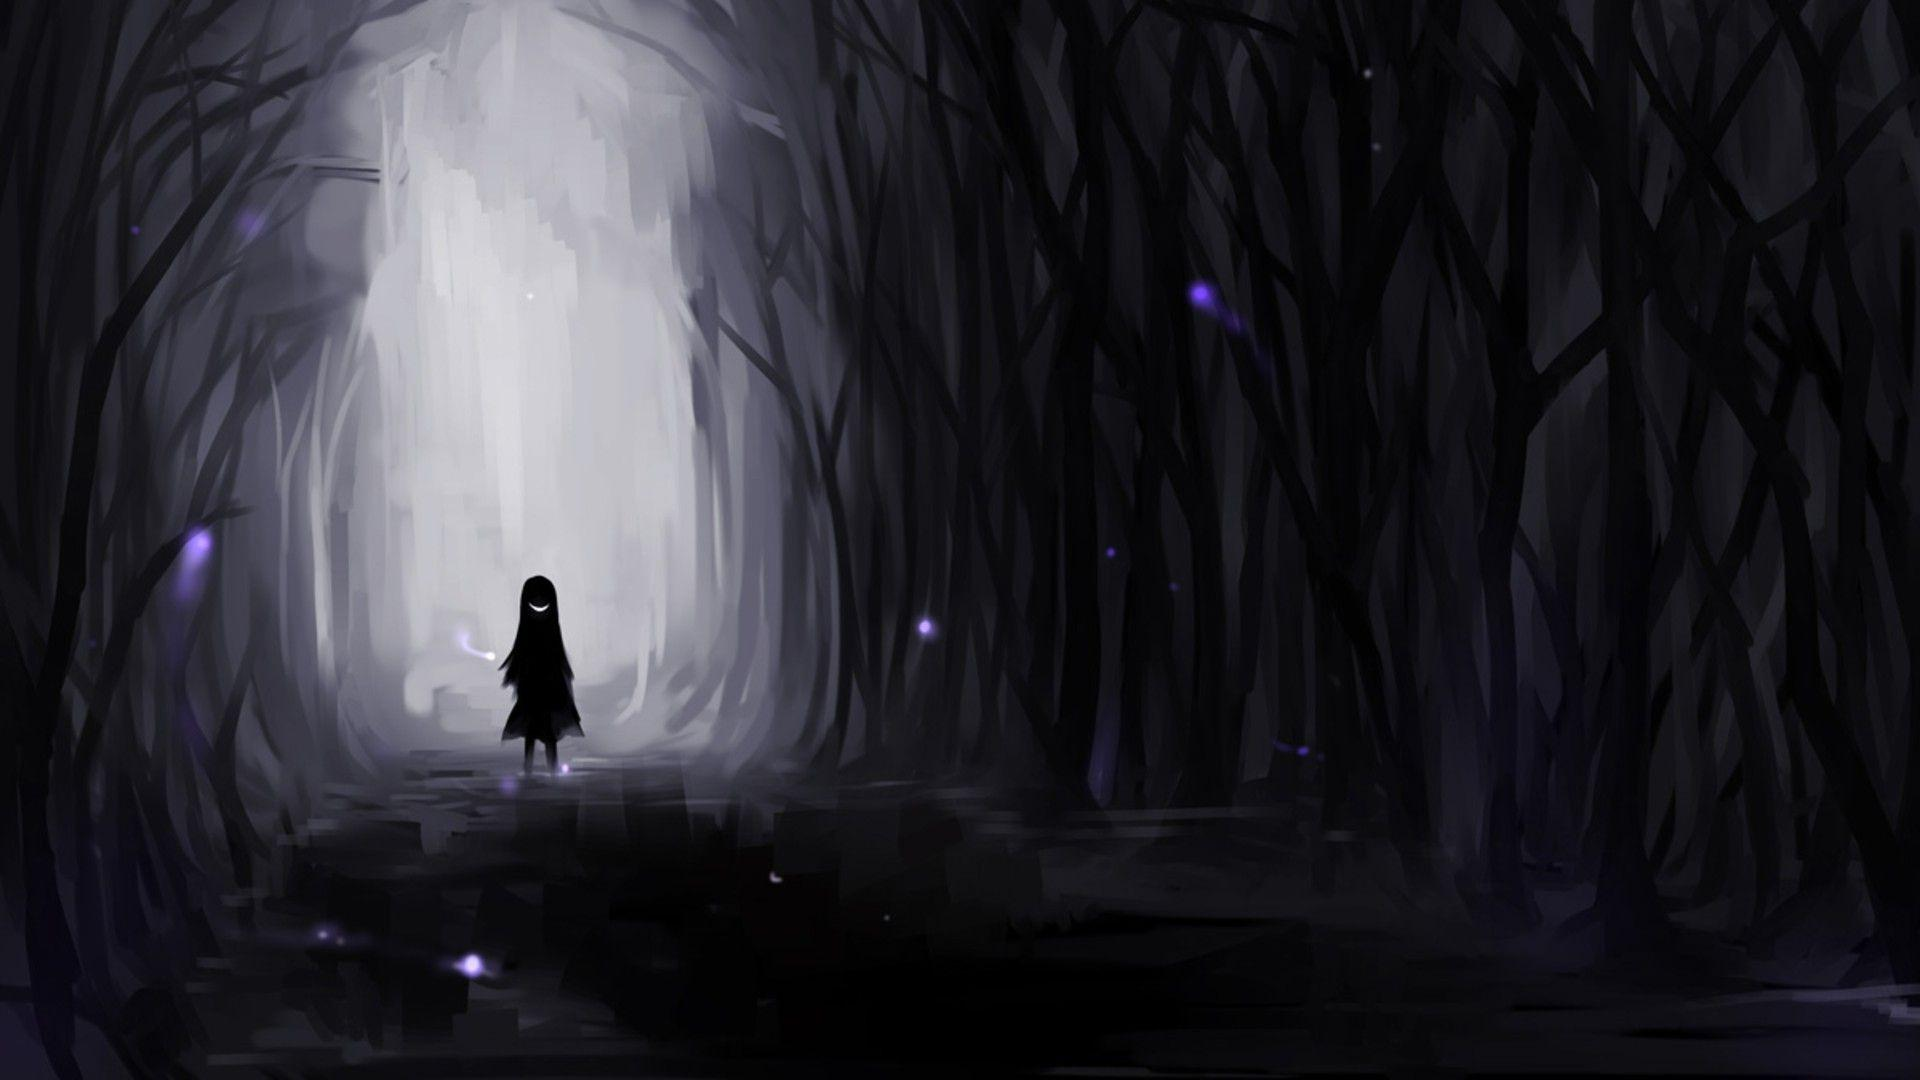 Alone Sad Anime Wallpapers Top Free Alone Sad Anime